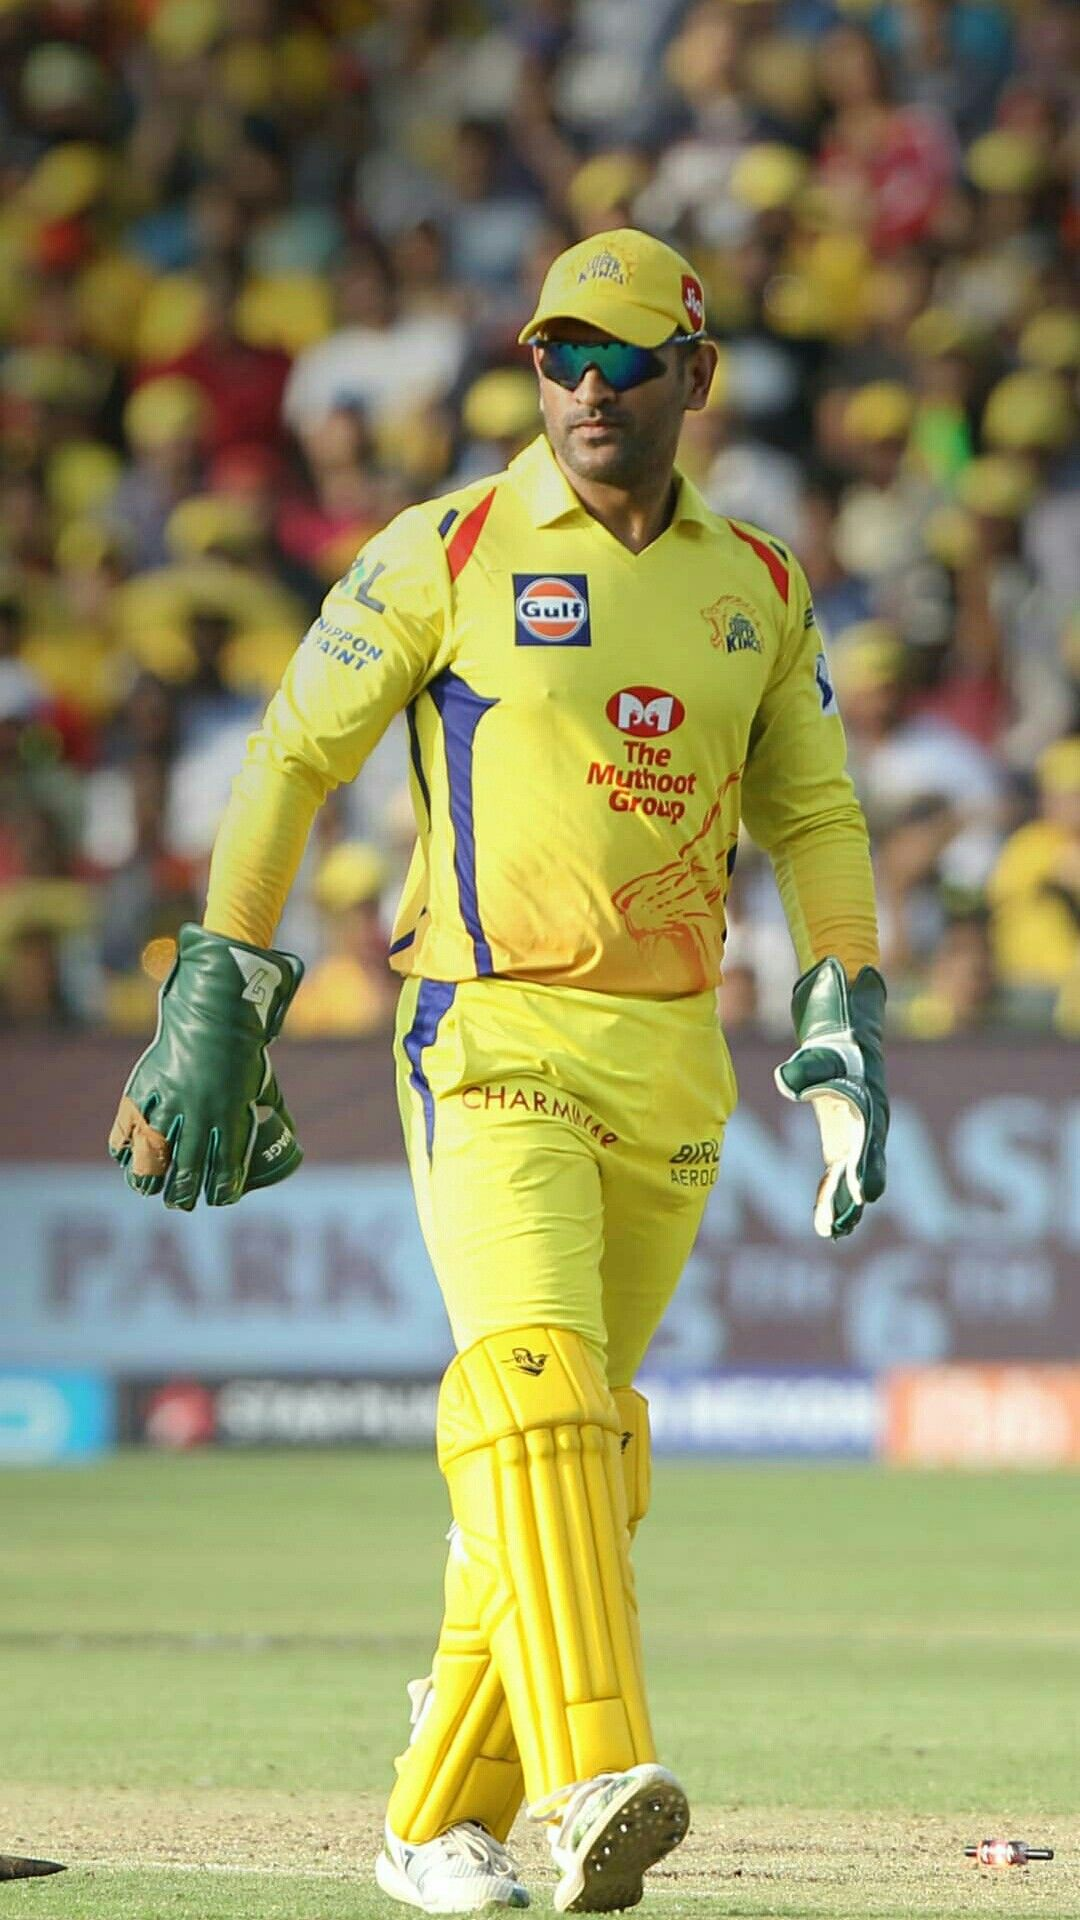 Pin by Scarlet Ibis on MSD Dhoni wallpapers, Cricket